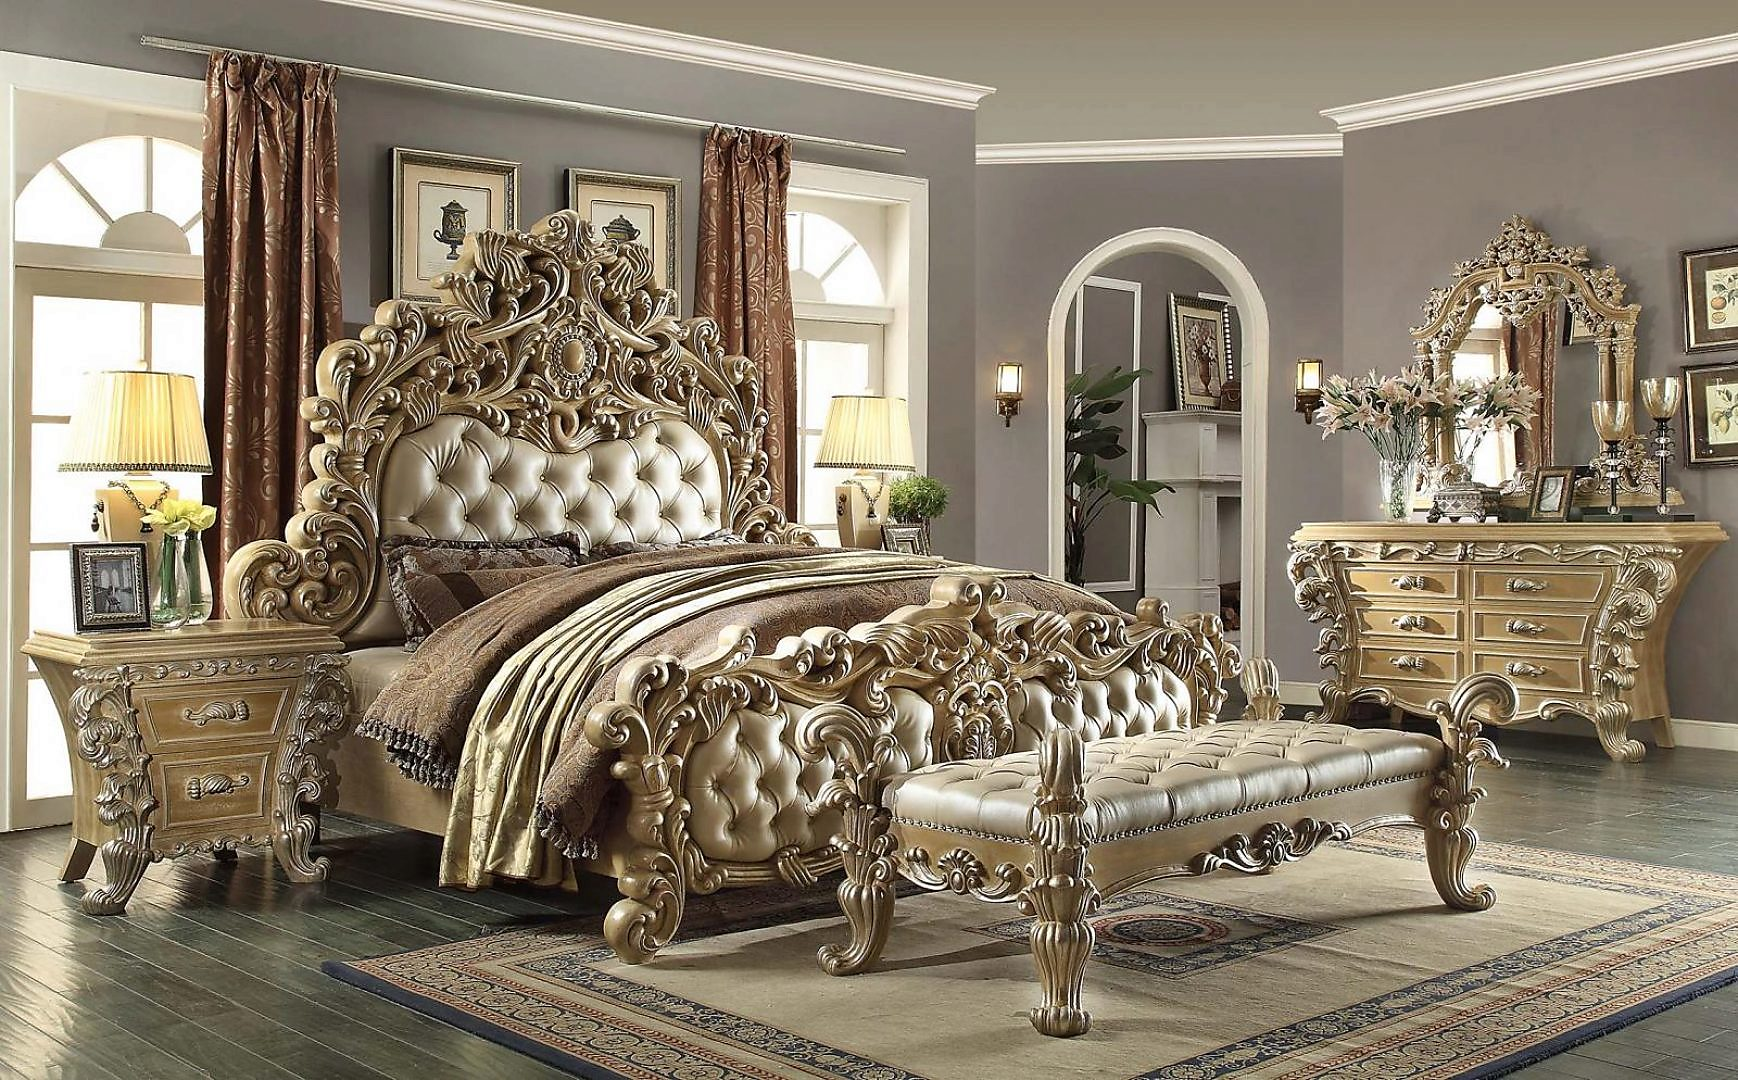 Traditional HD-7012 Queen Bedroom Set 5Pcs in Champagne by Homey Design